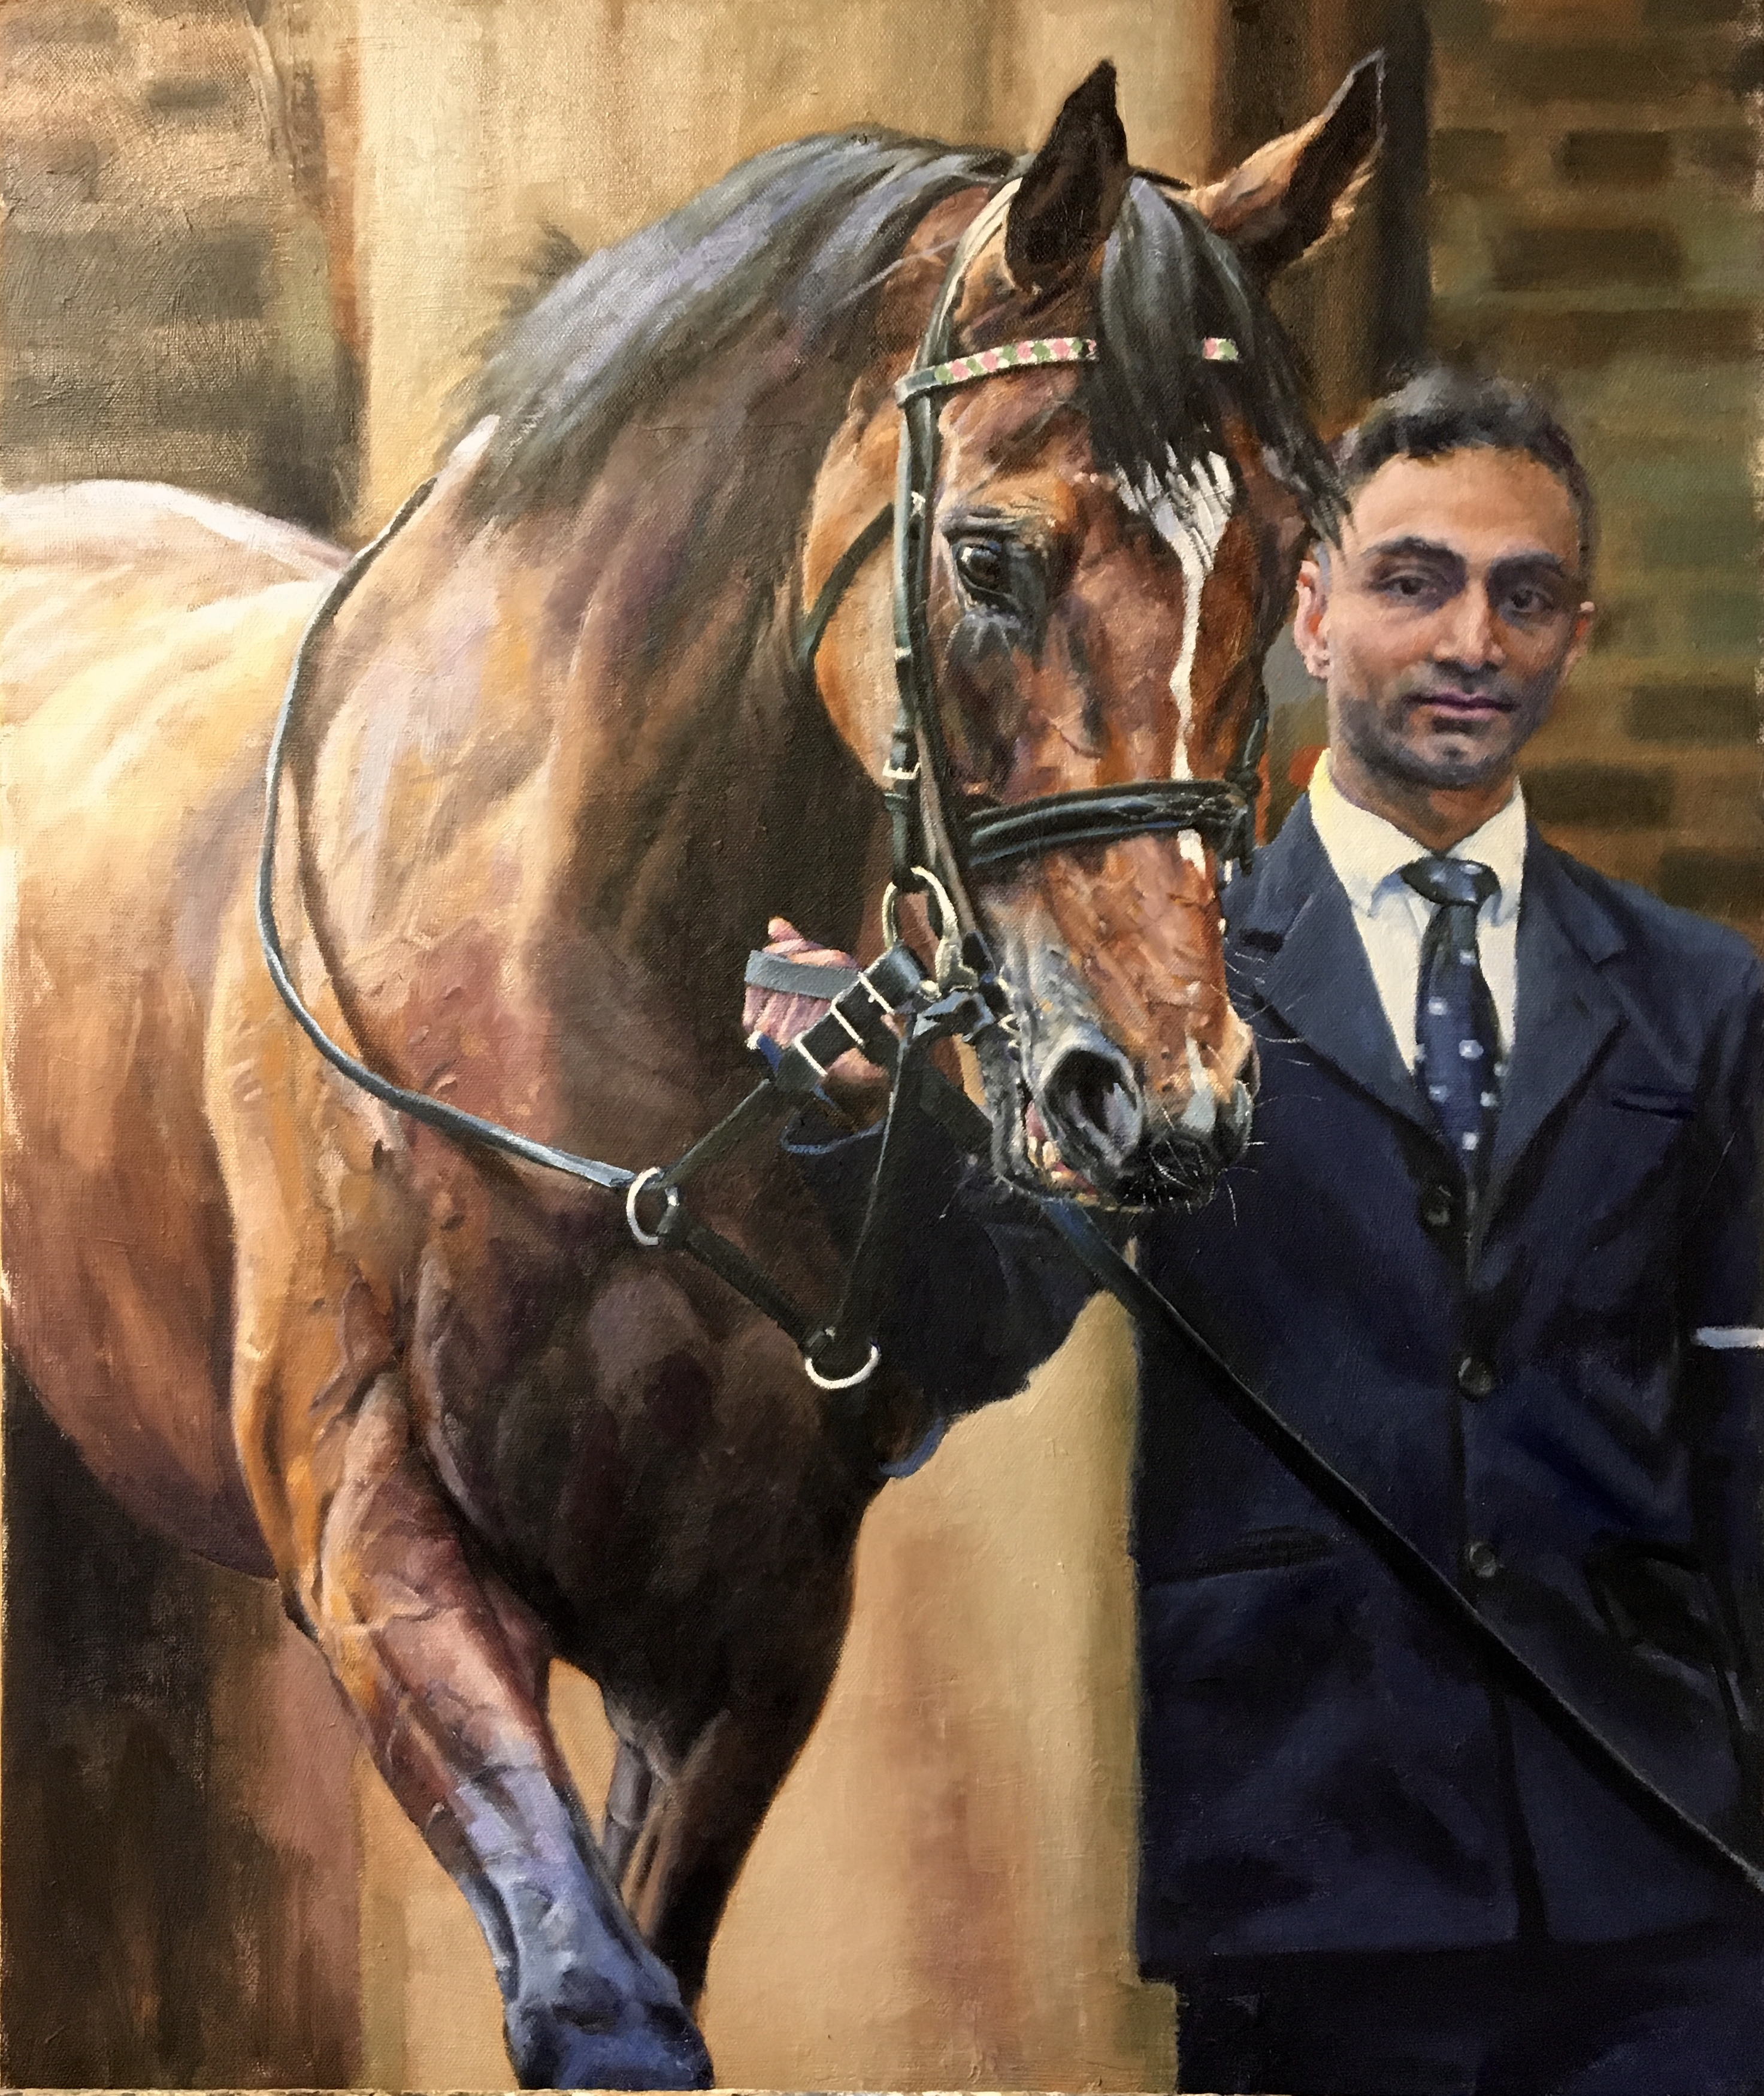 'Enable and Imran'